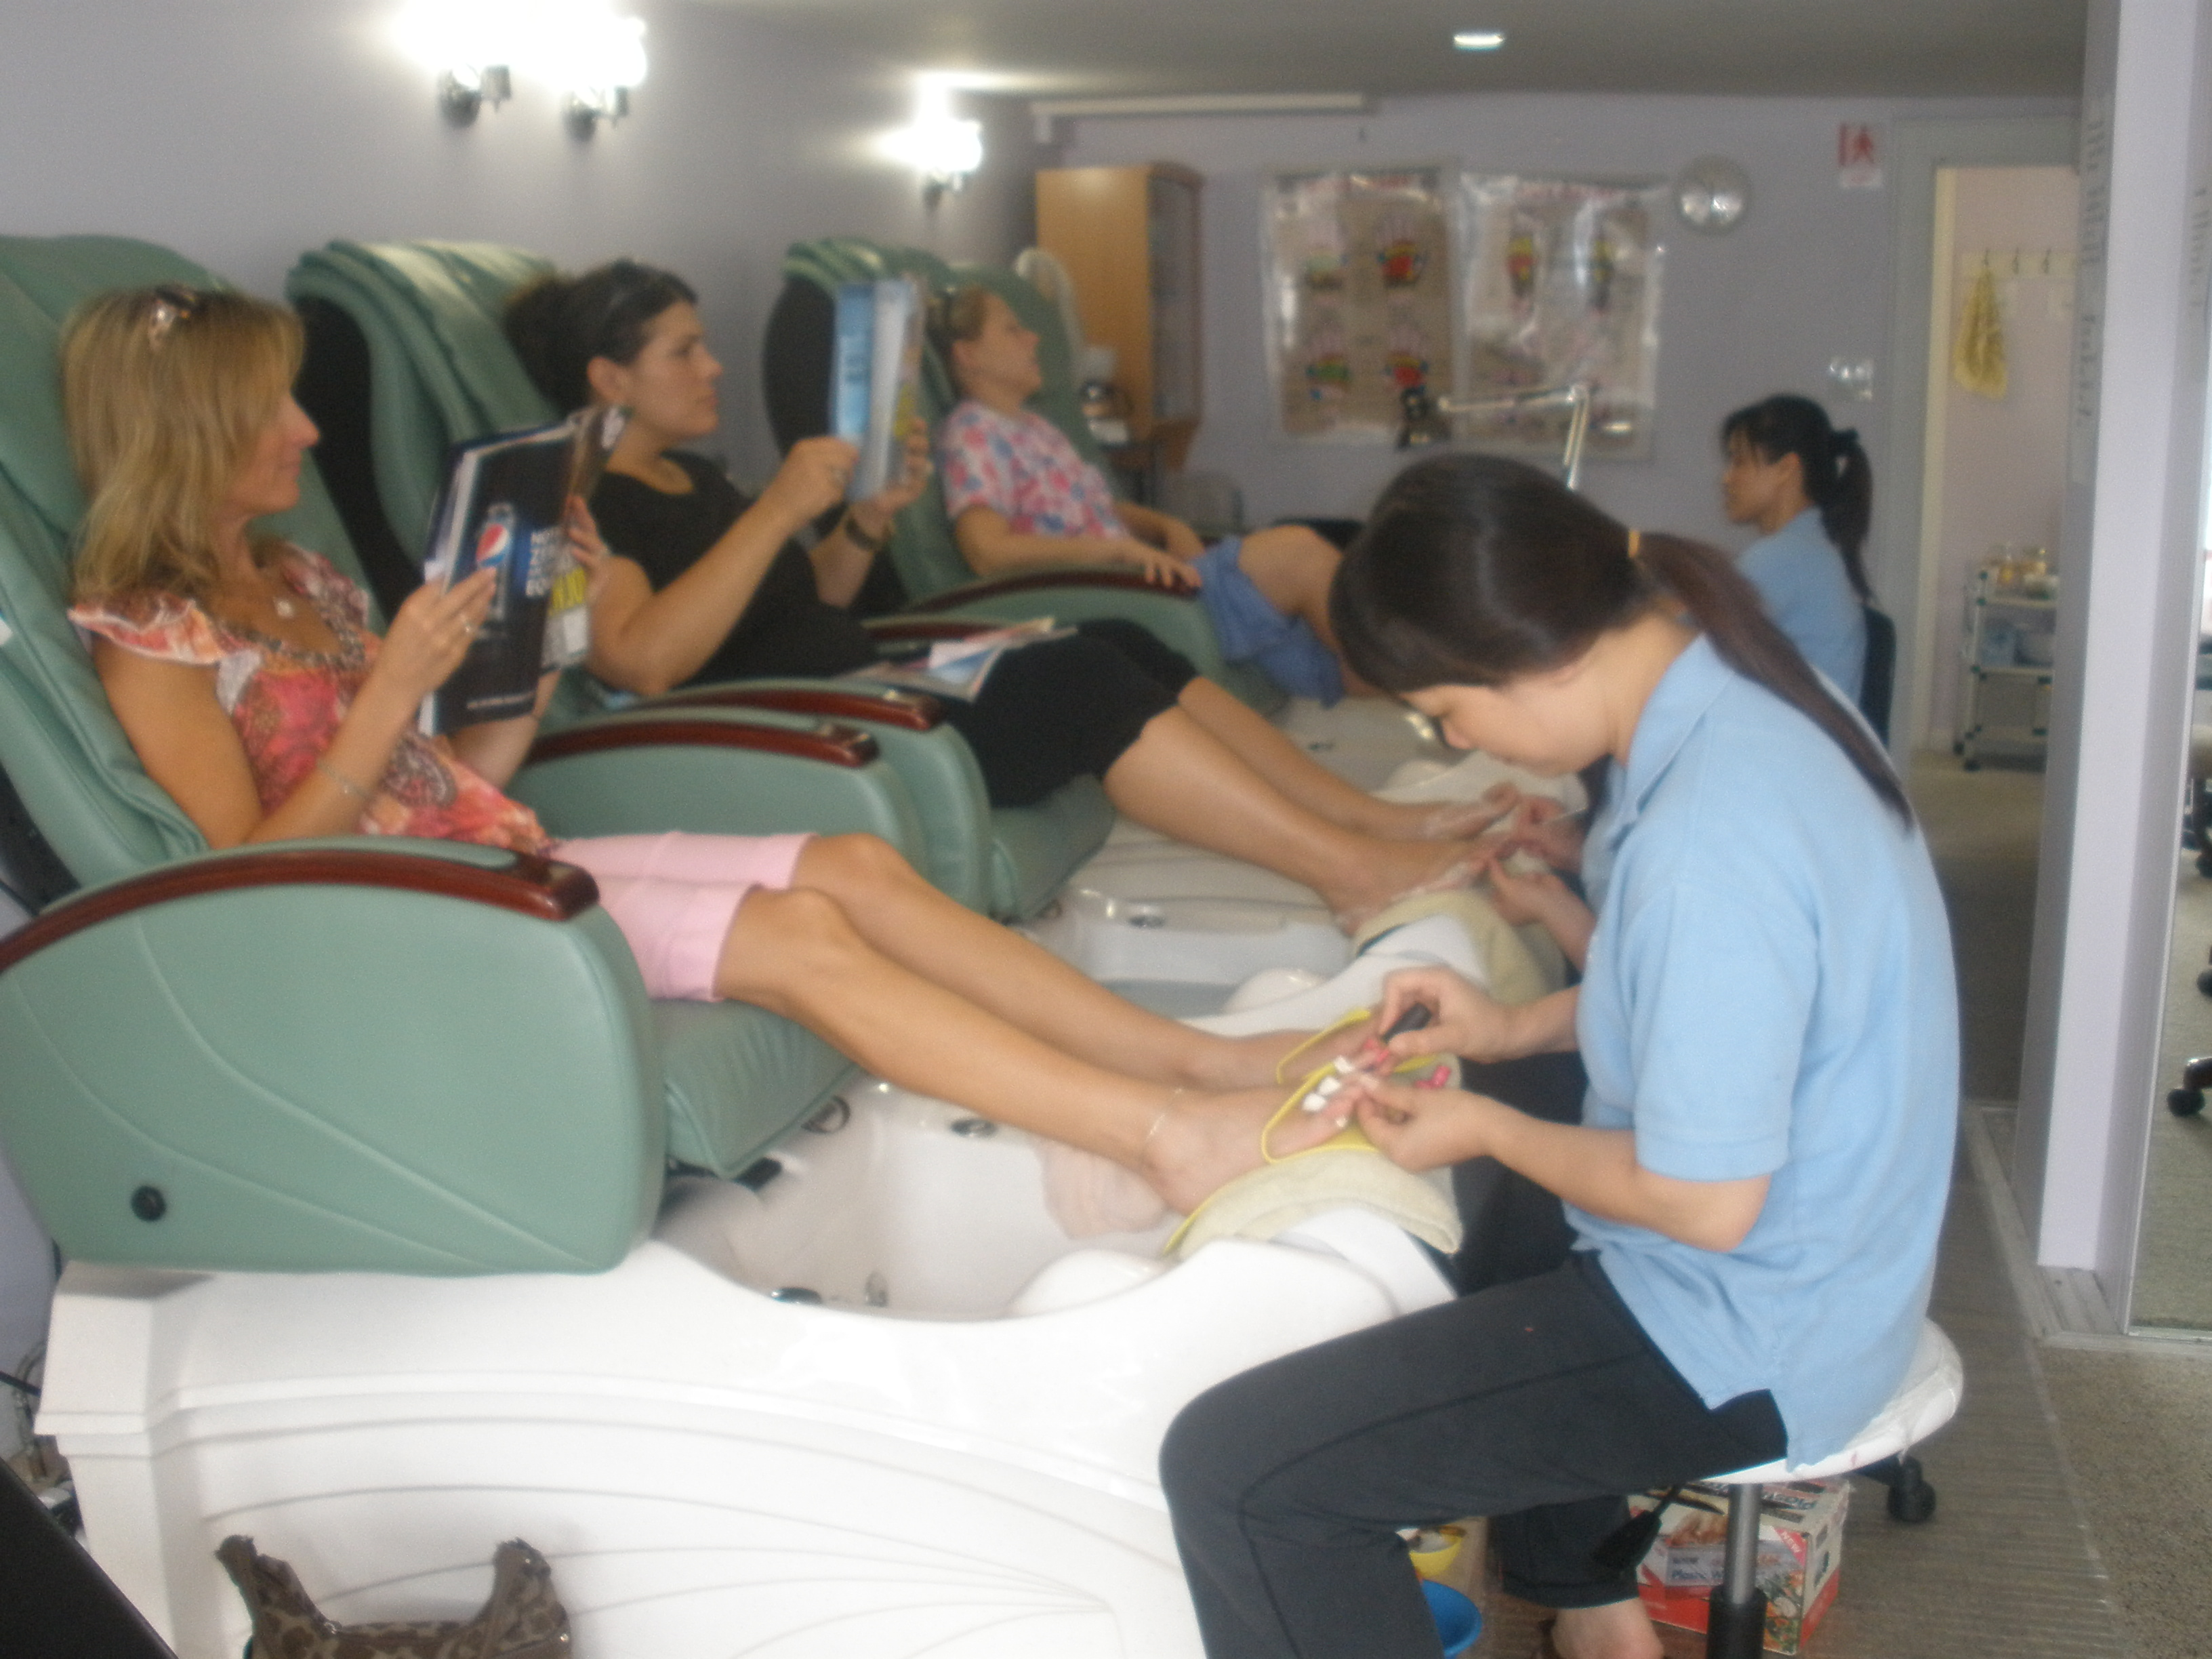 Indoor photo pedicure for Nail salon hours